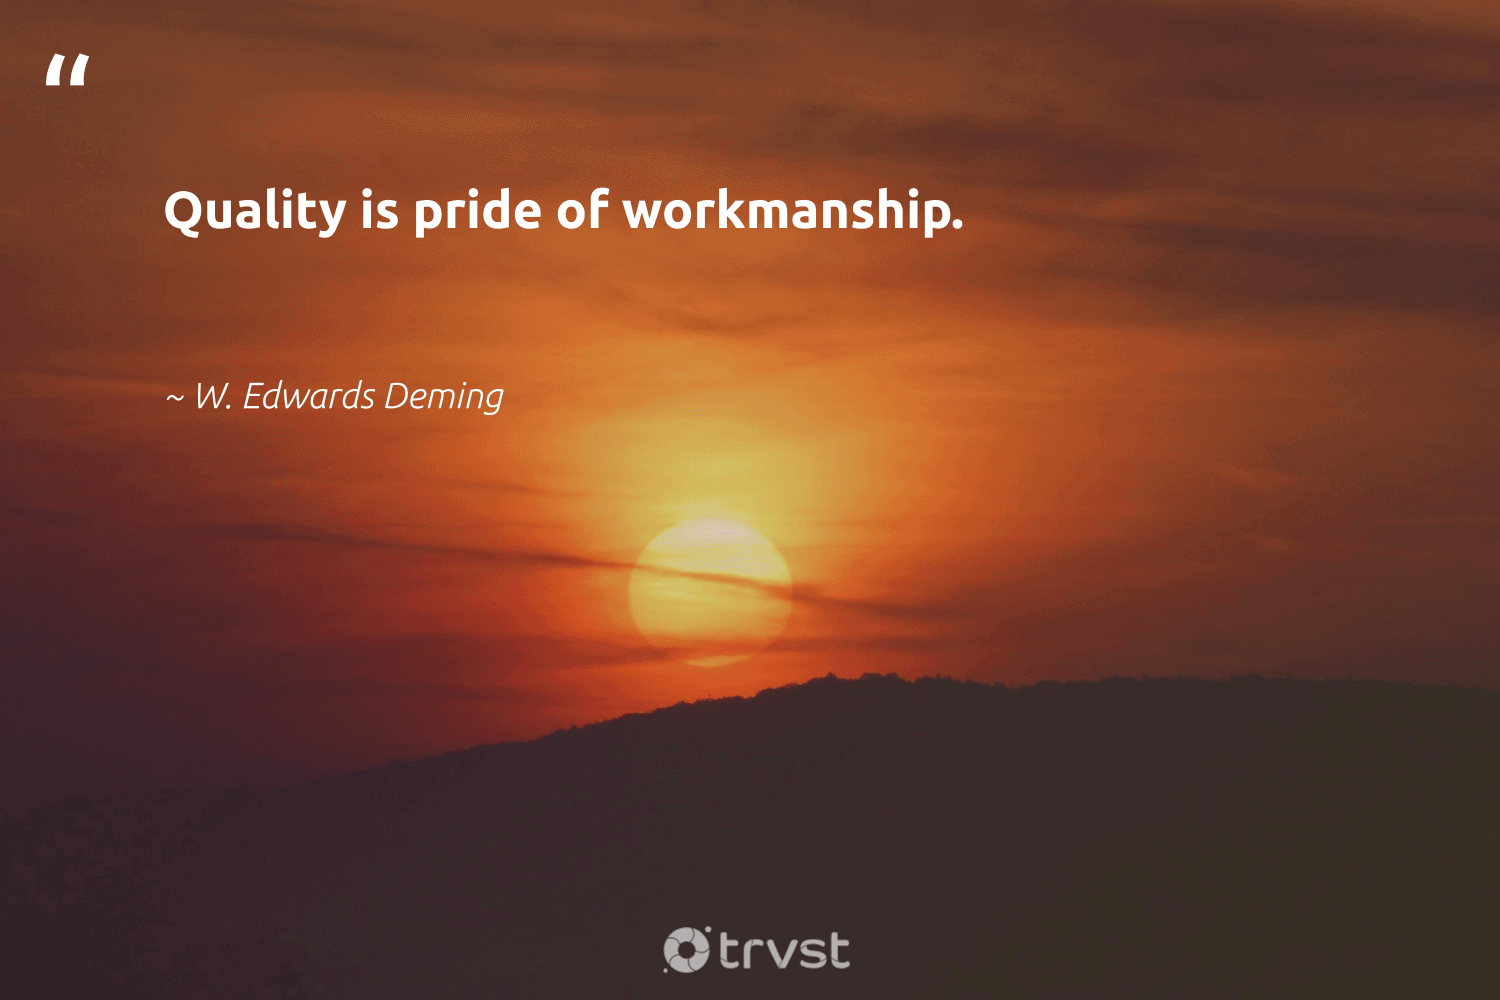 """""""Quality is pride of workmanship.""""  - W. Edwards Deming #trvst #quotes #pride #softskills #dotherightthing #futureofwork #takeaction #begreat #dosomething #nevergiveup #beinspired #gogreen"""